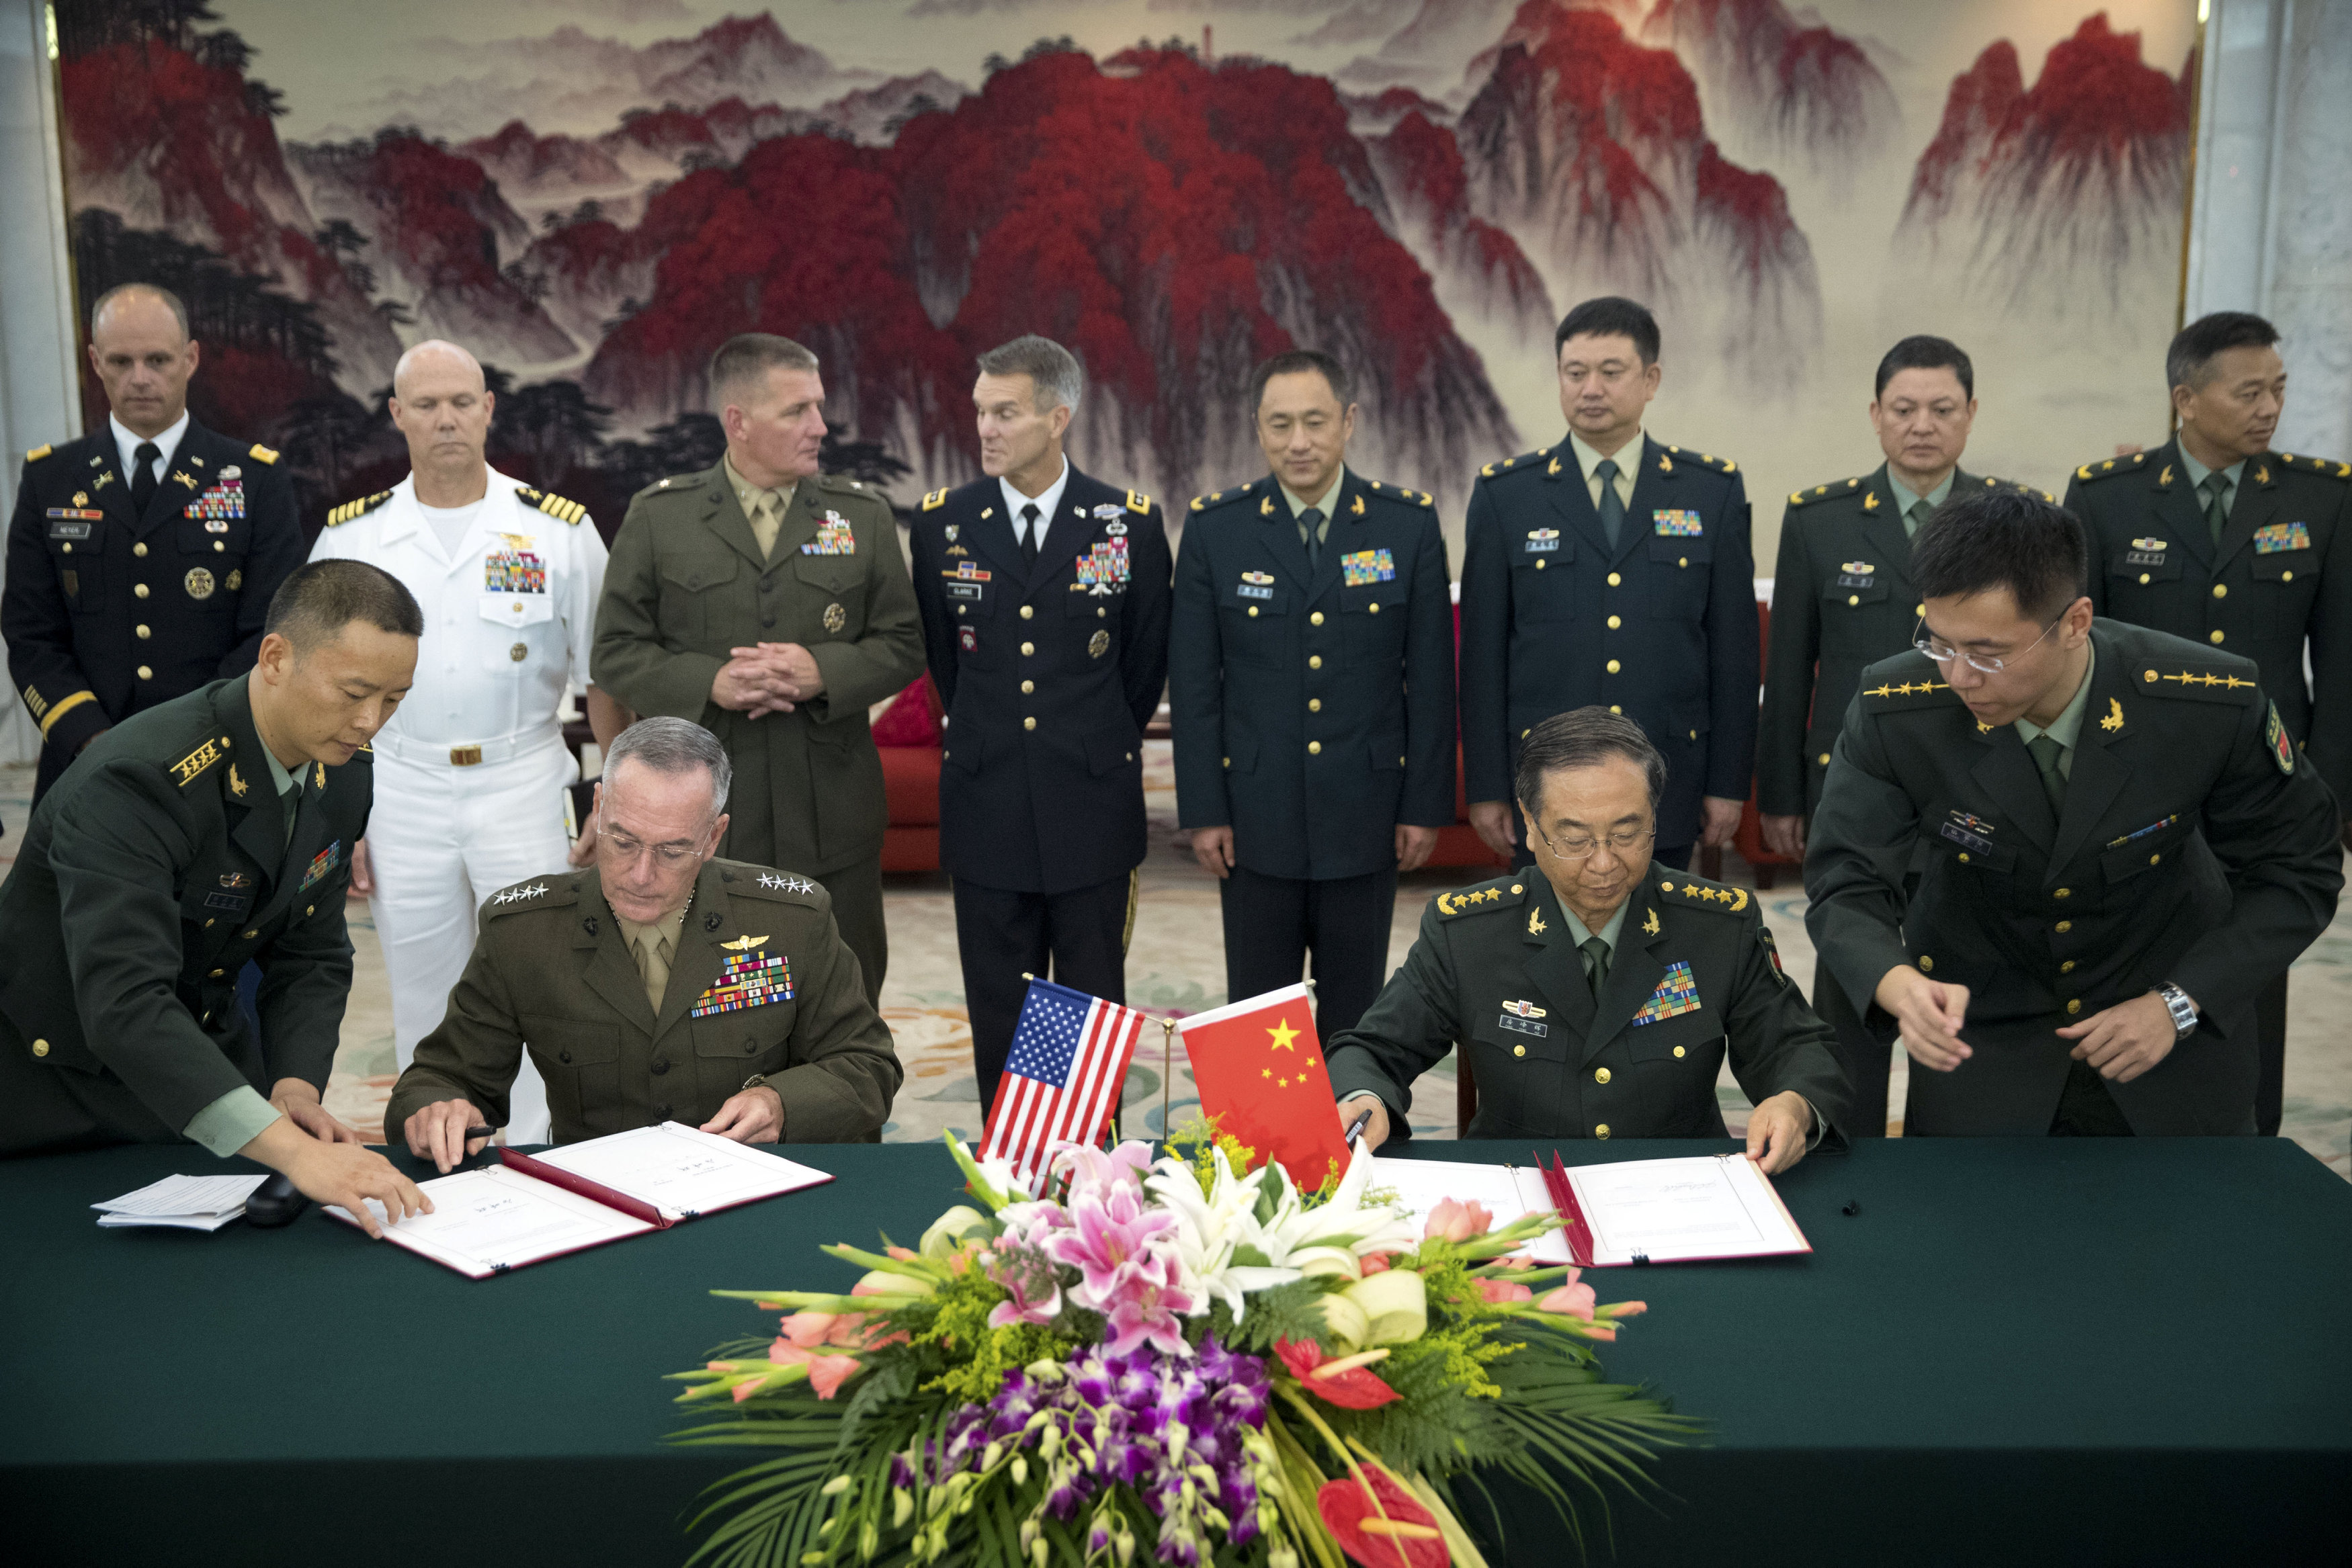 U.S. committed to working through difficulties with China